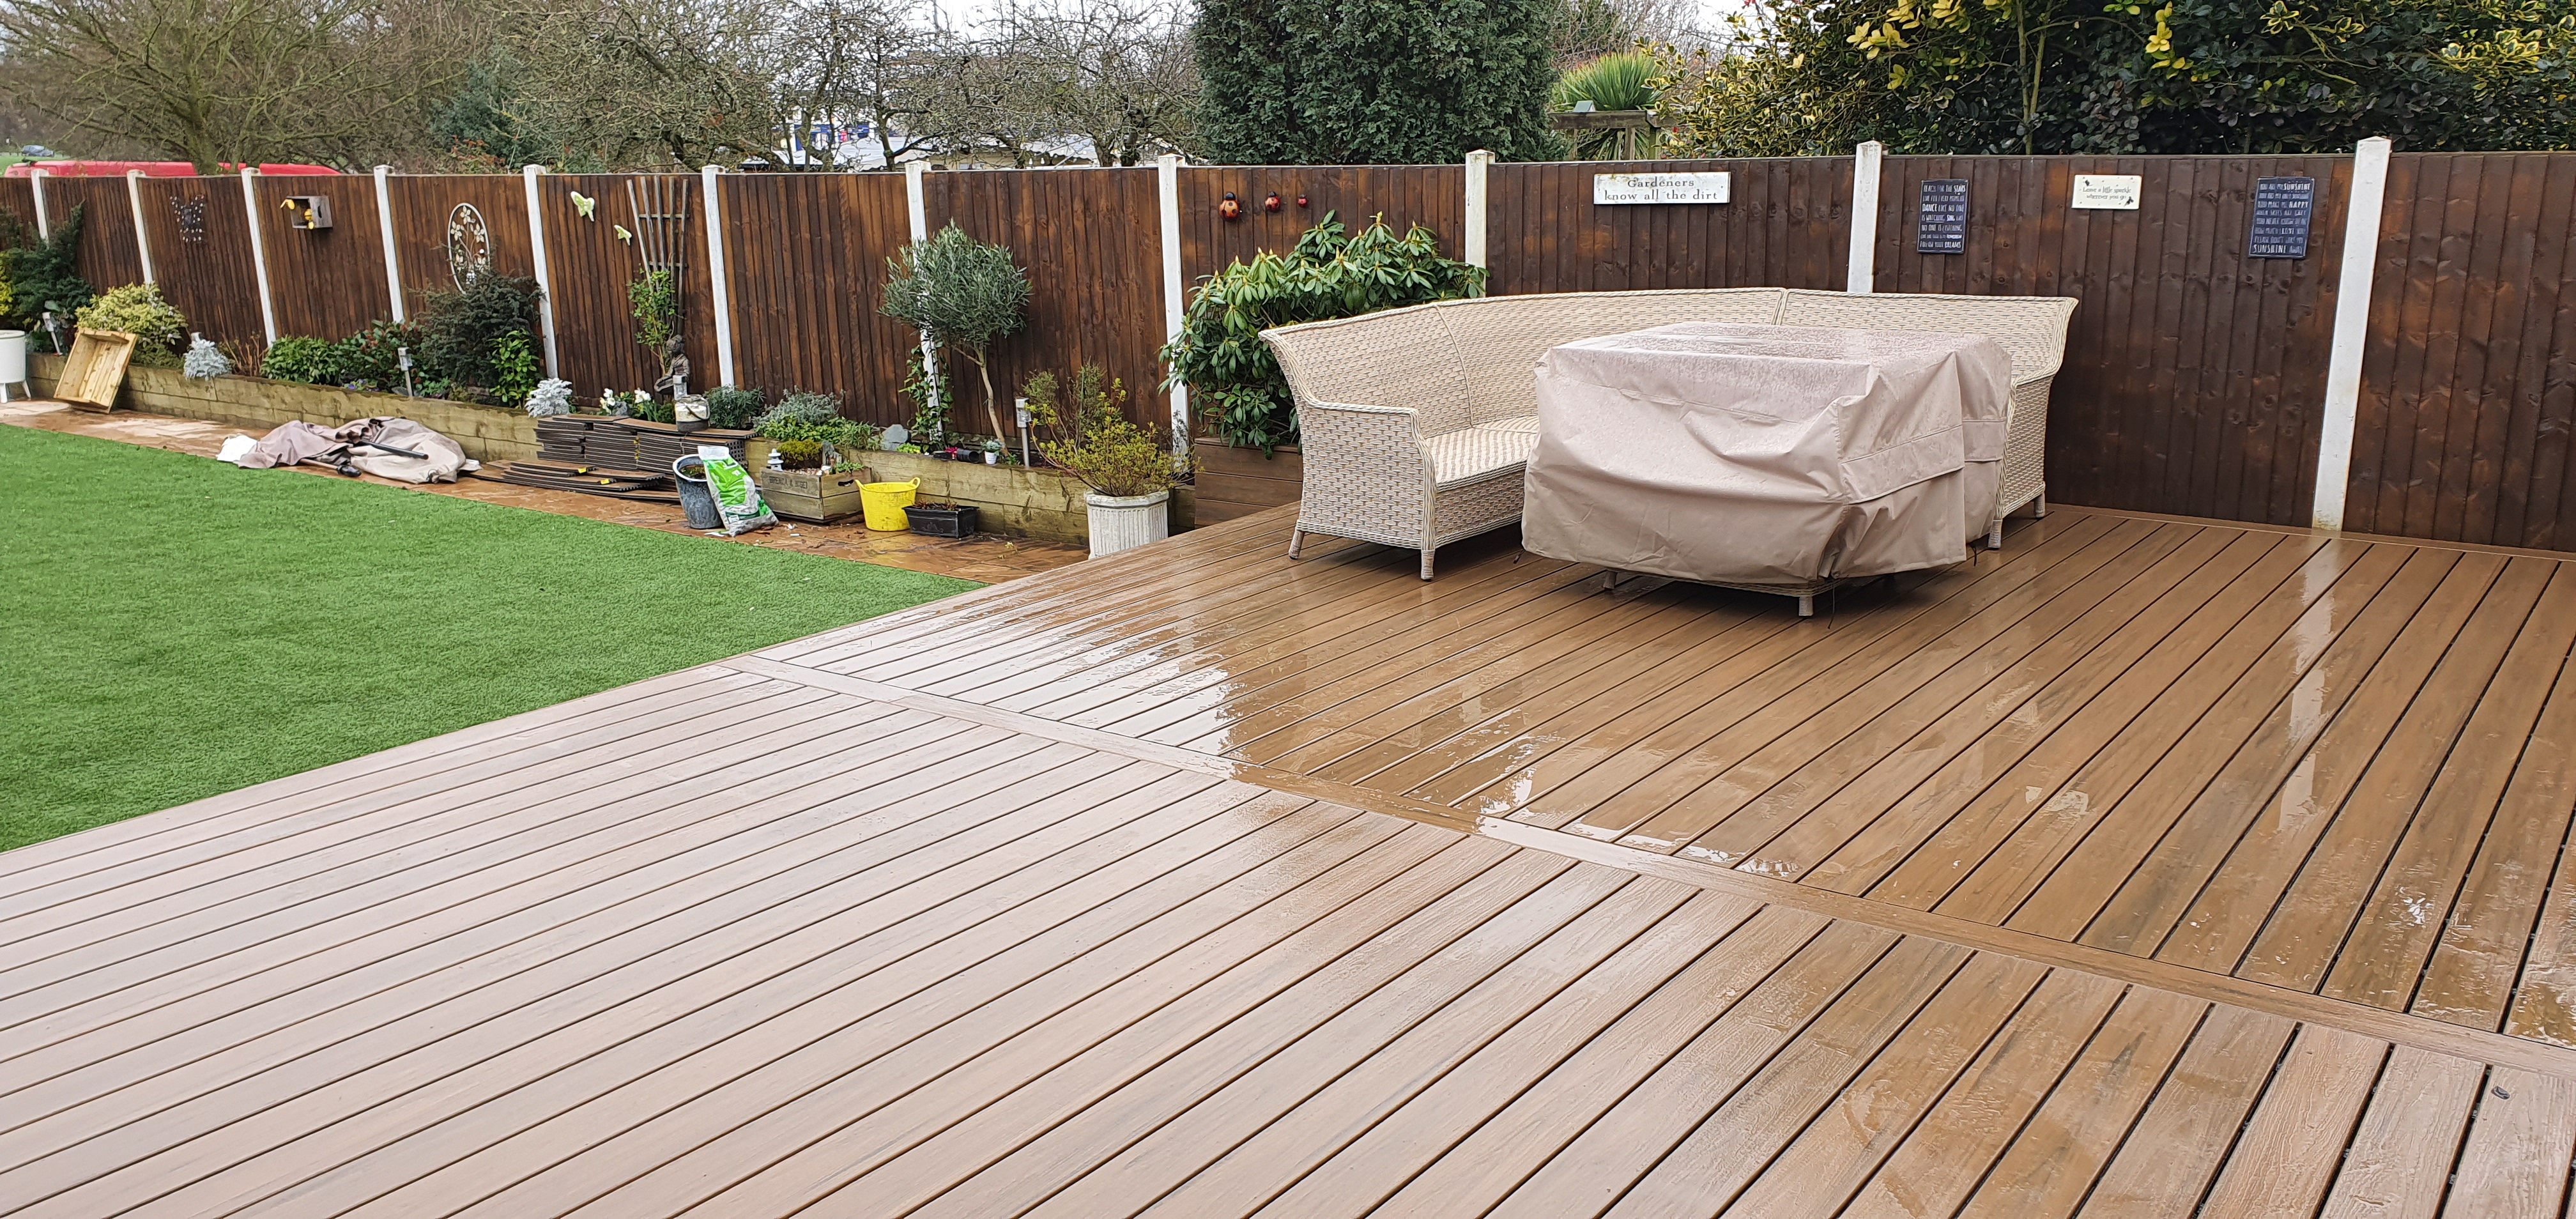 Trex decking in Essex